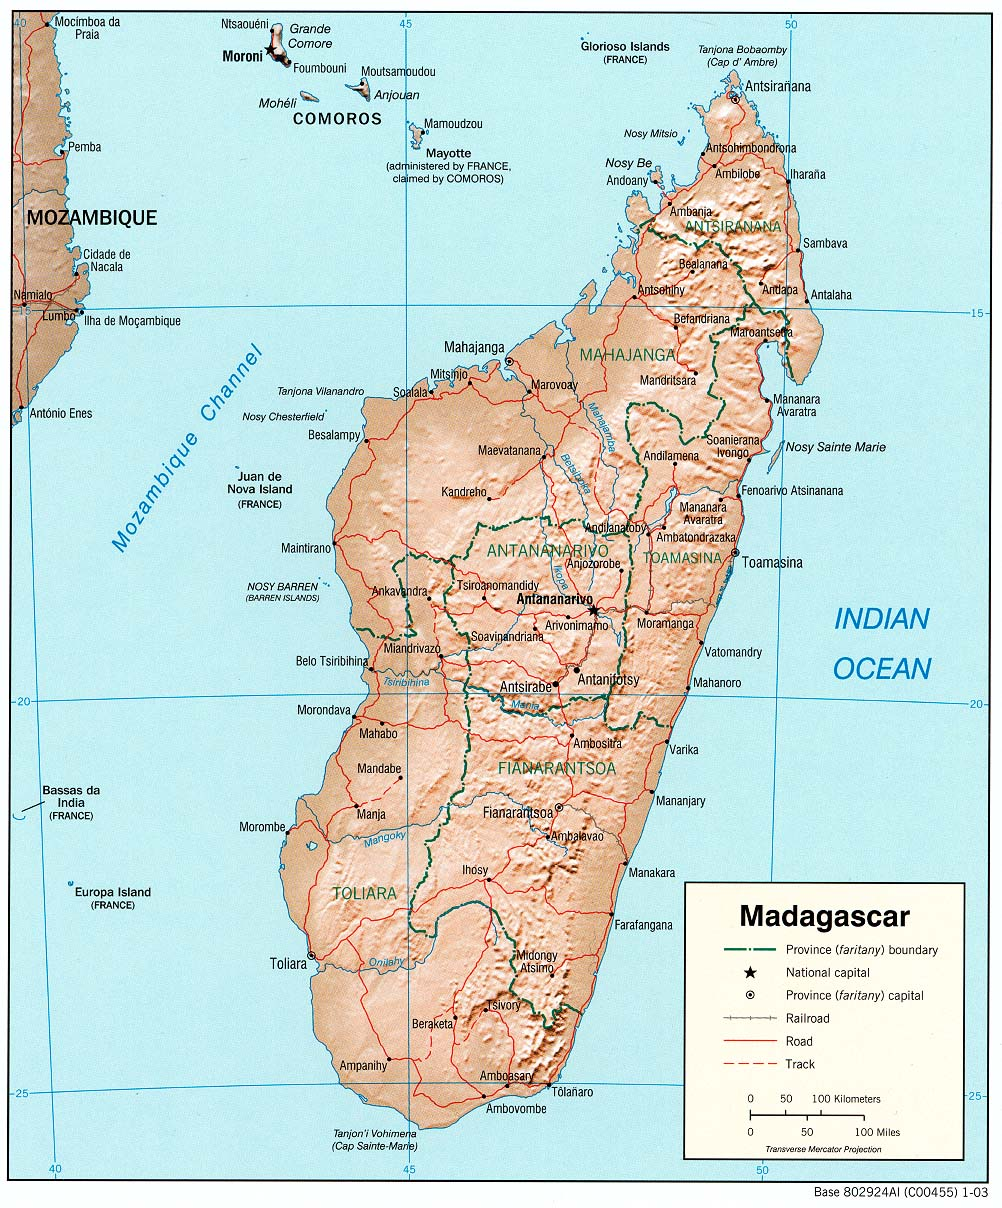 Topographic Map Of Madagascar.Madagascar Maps Perry Castaneda Map Collection Ut Library Online